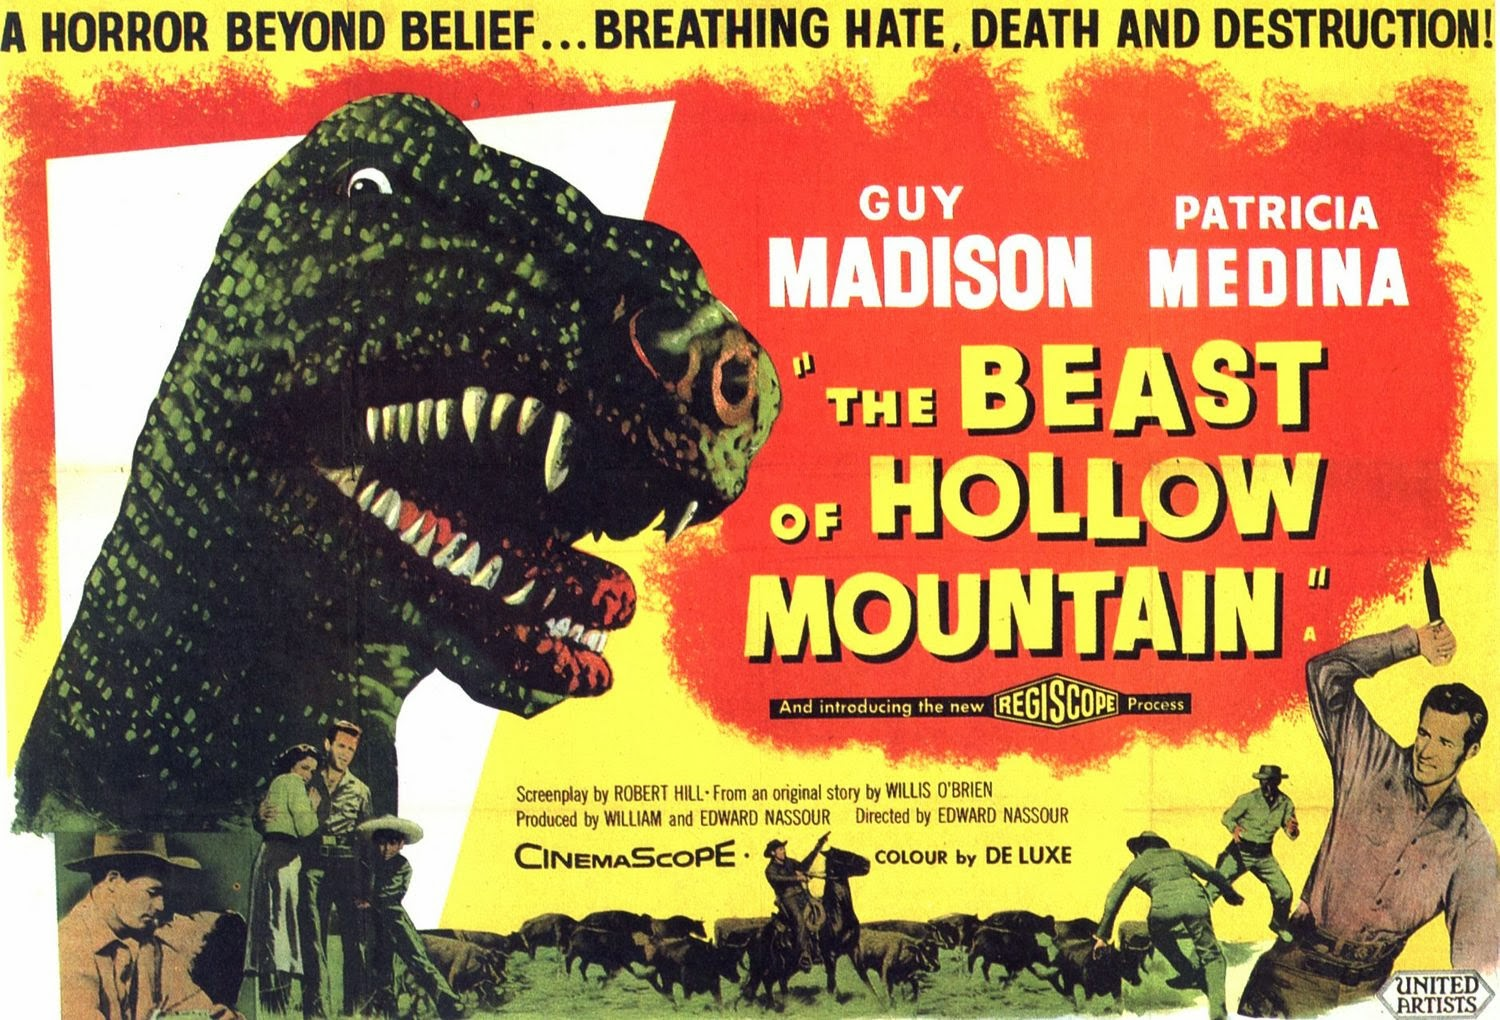 http://wrongsideoftheart.com/2009/06/the-beast-of-hollow-mountain-1956-usa-mexico/